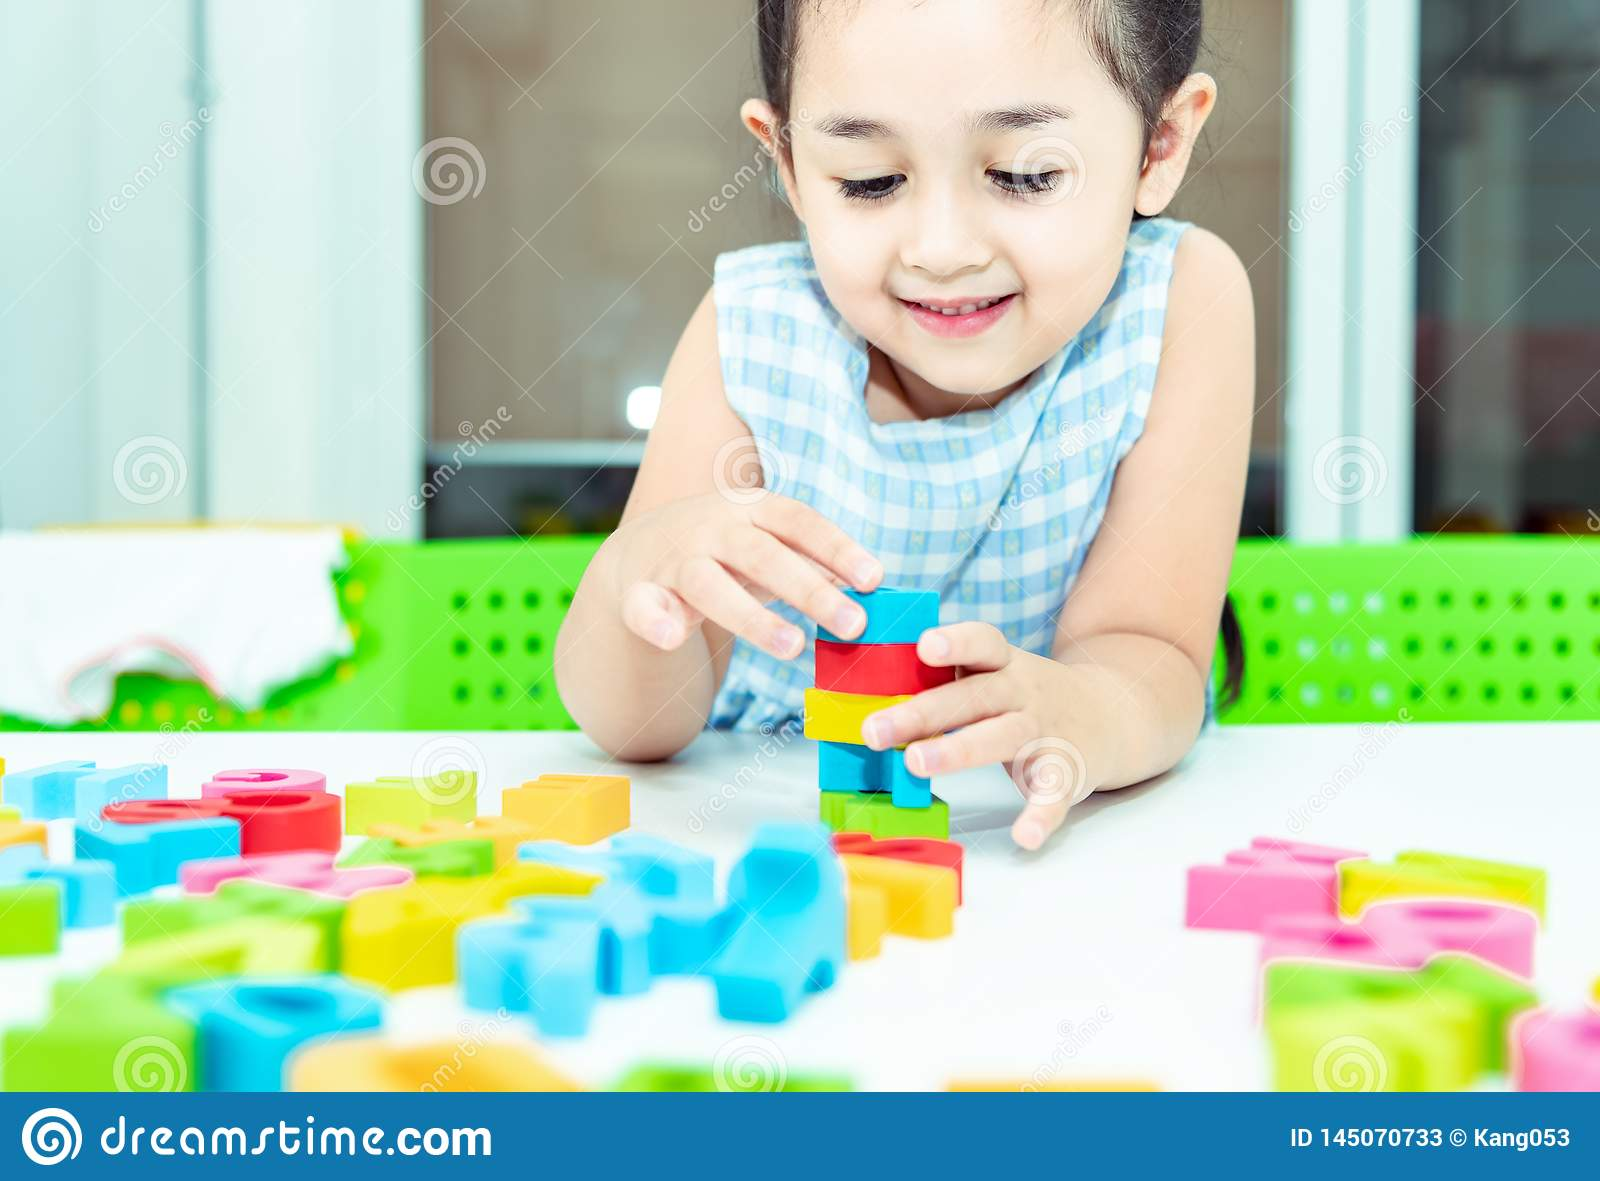 Cute kids female playing with toy designer on the floor at home. Child girl exciting while playing with alphabet colorful blocks.